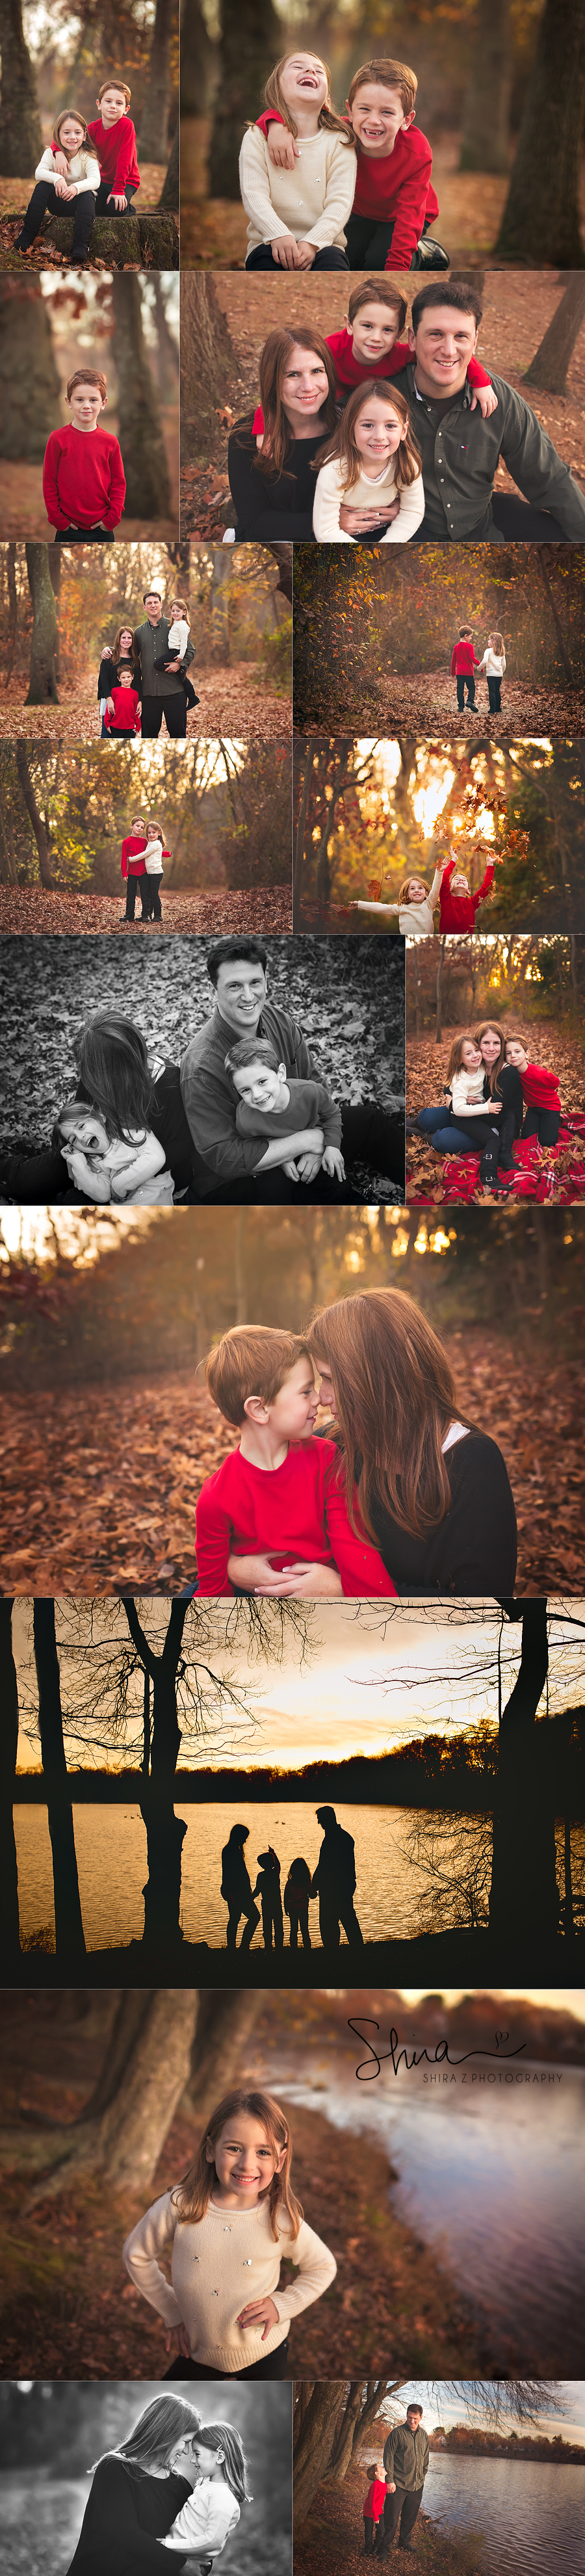 Nassau County Family portraits at a park outdoors